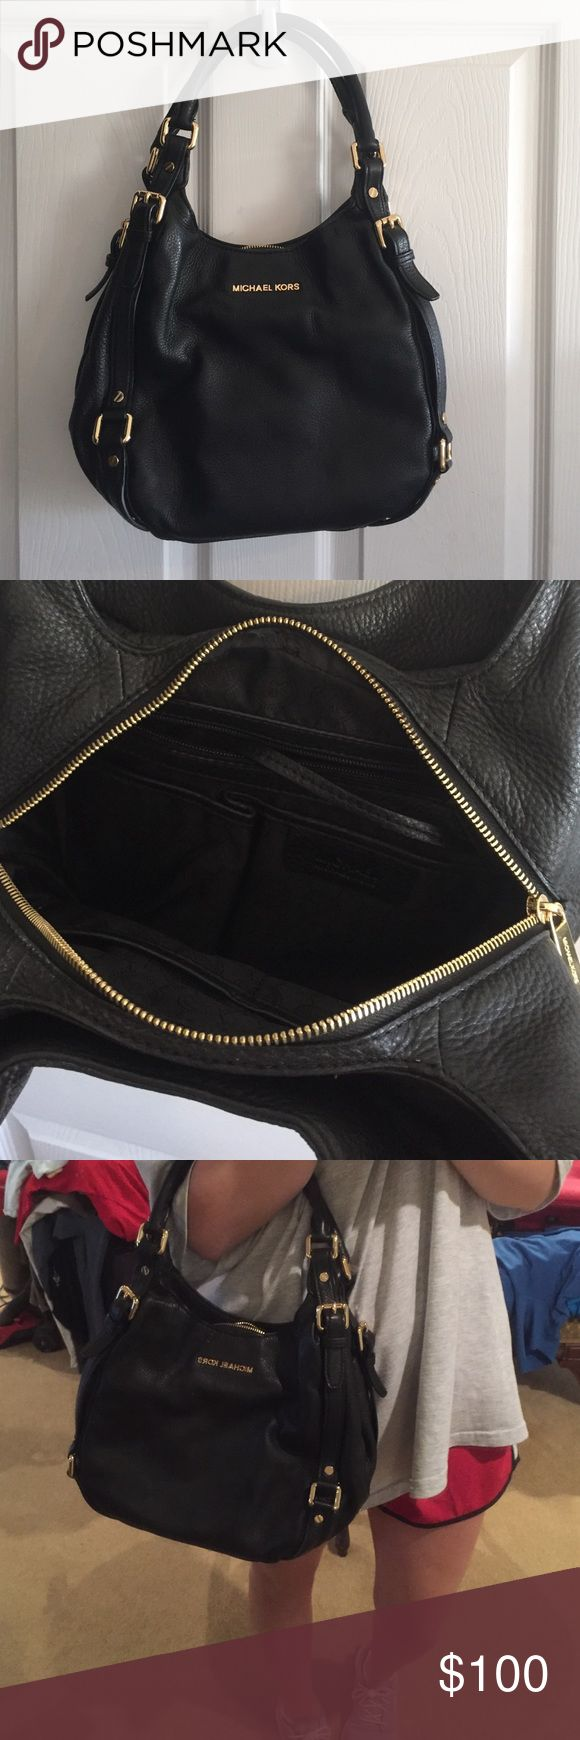 Michael kors black purse Brand new!! never used! Lots of room MICHAEL Michael Kors Bags Shoulder Bags